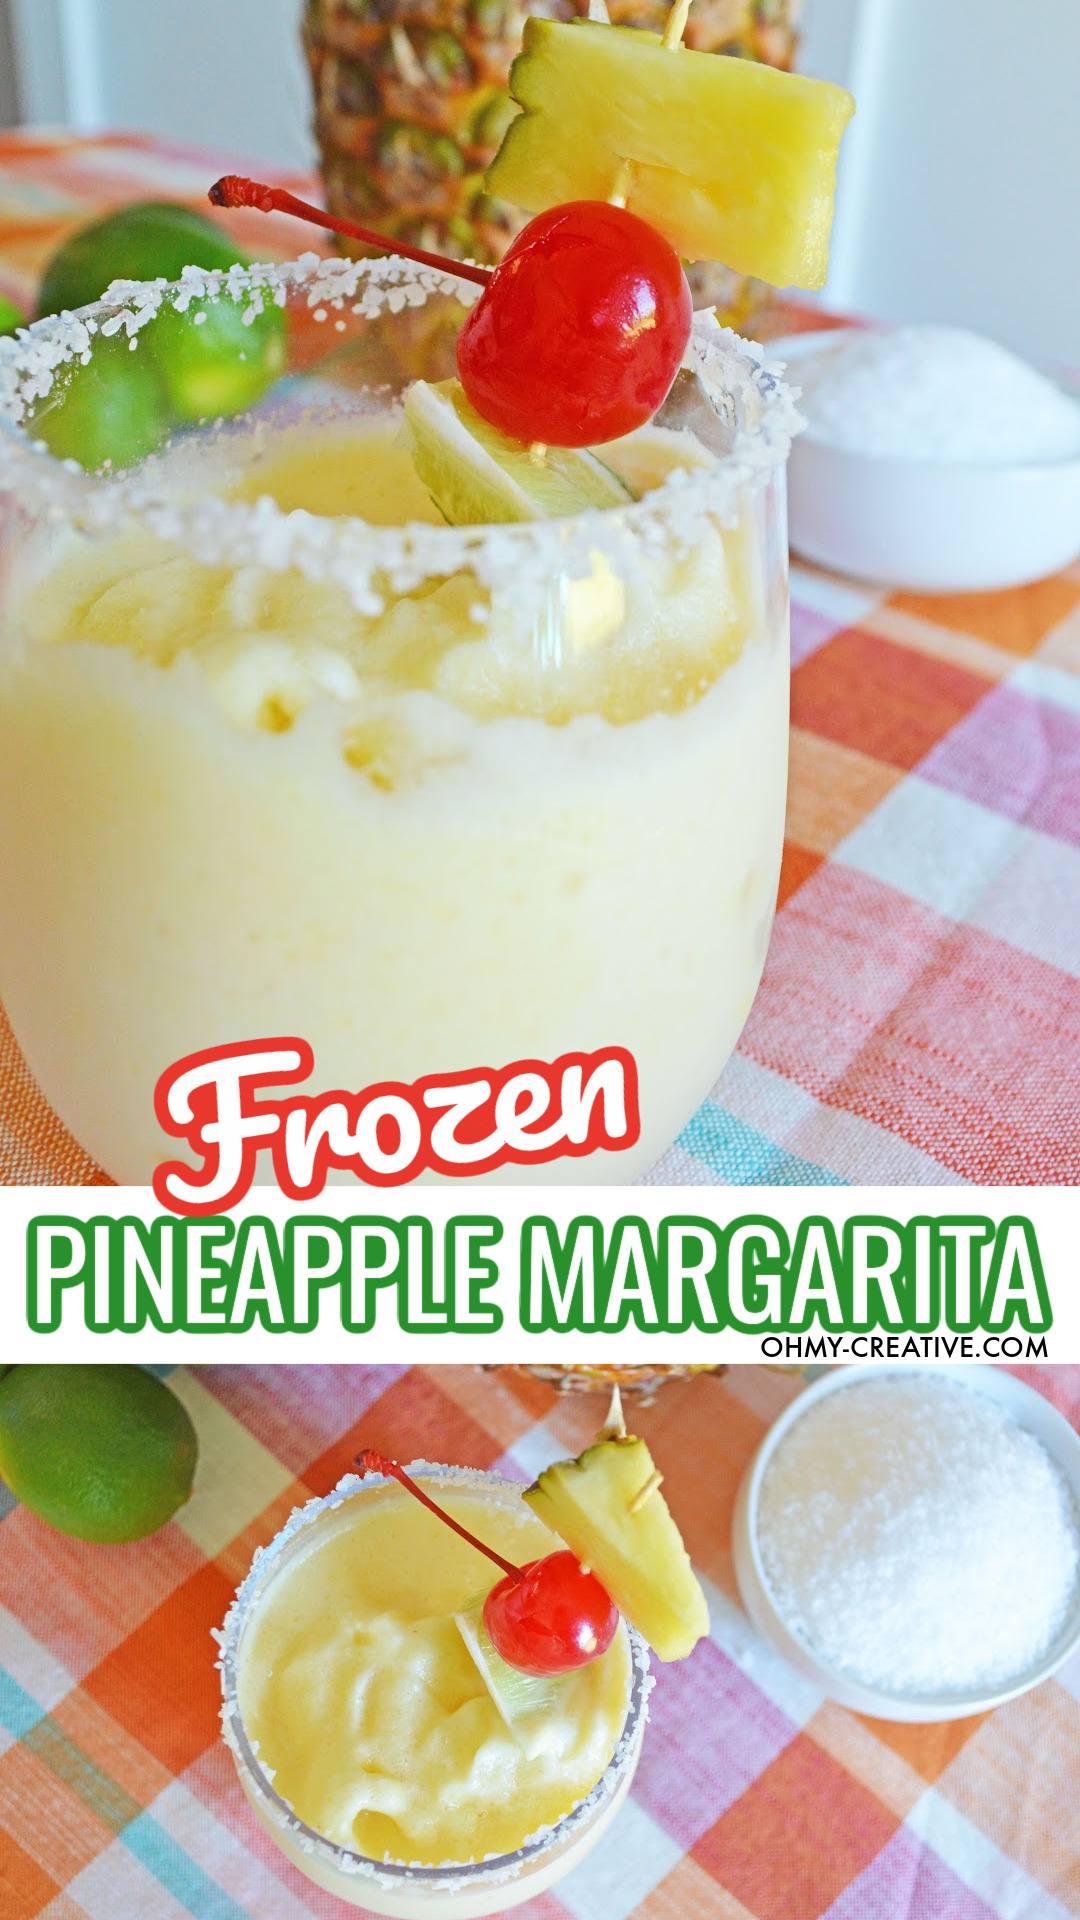 A pineapple margarita in a round bottom stemless glass with a salt rim. This cocktail is garnished with a slice of lime, a cherry and a cube of fresh pineapple. The margarita sits on a orange plaid napkin with fresh limes and a pineapple in the background.